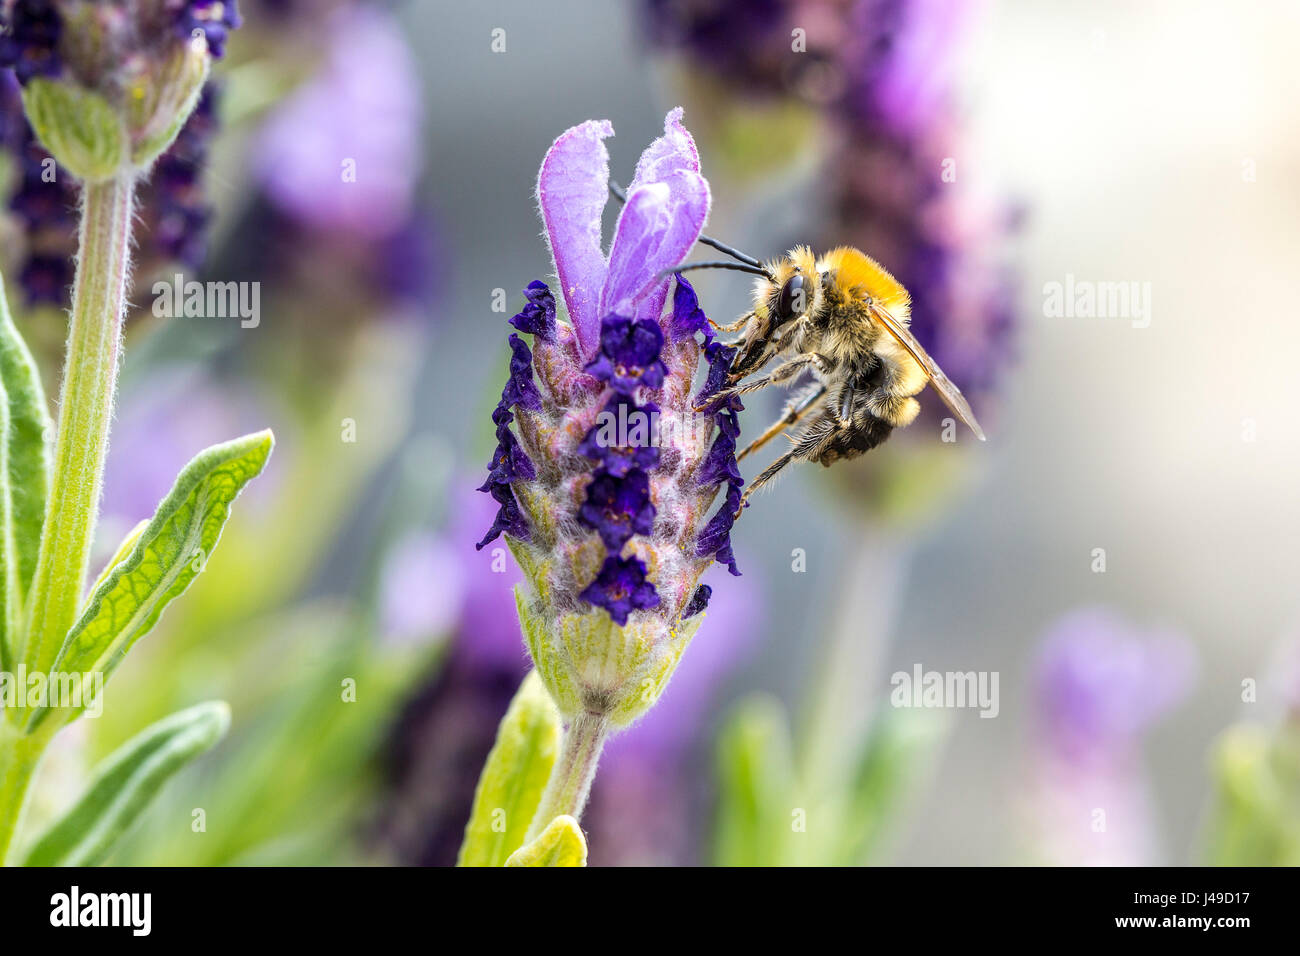 Macro of a bee pollinating lavender flowers - Stock Image